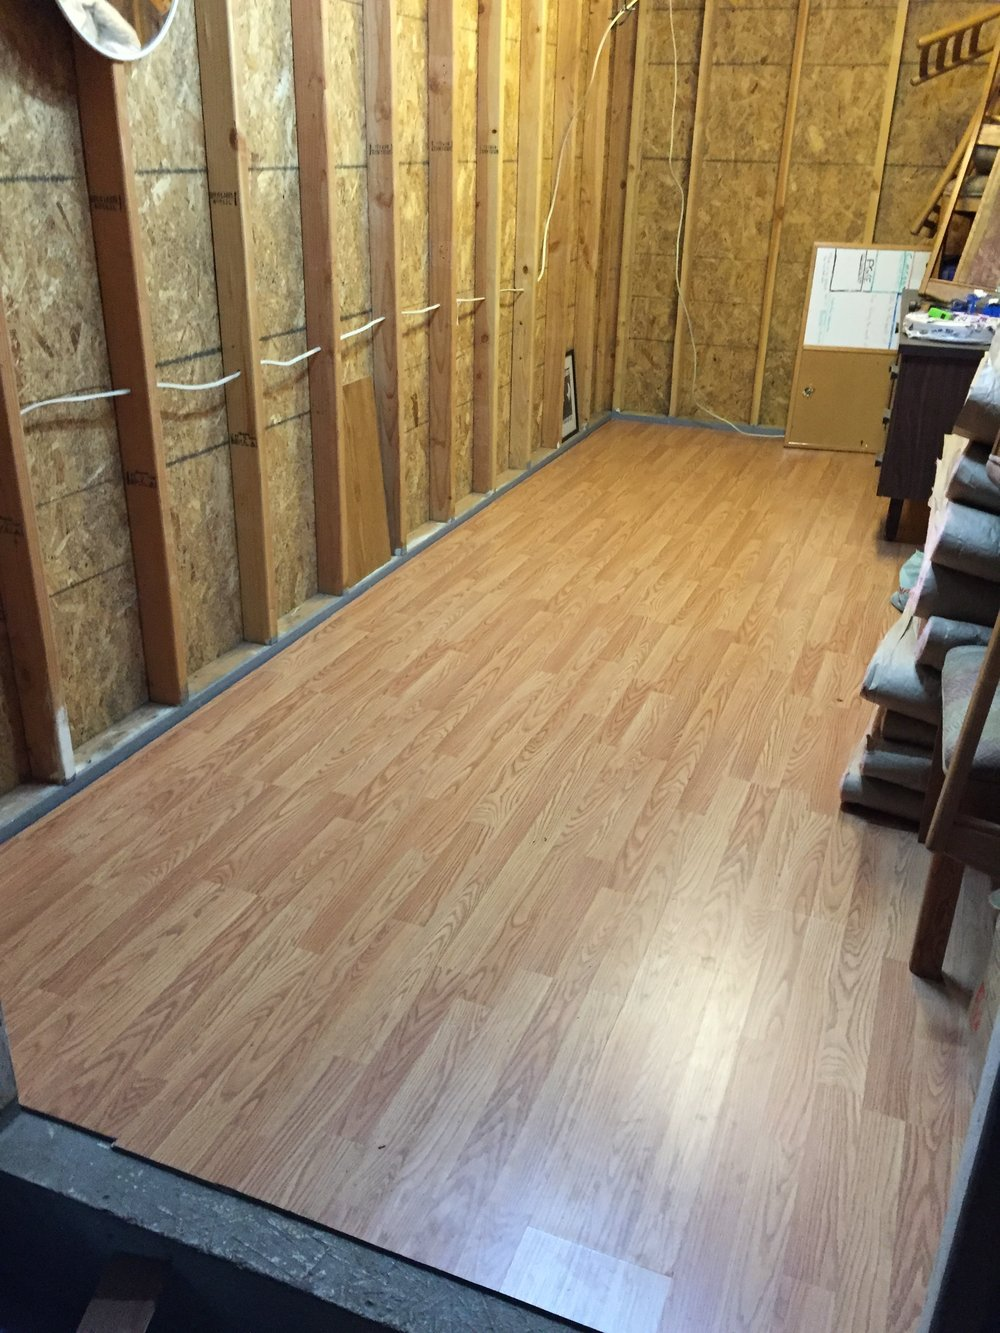 After fake wood flooring laminate was added, the insulation & drywall still needed to go up.